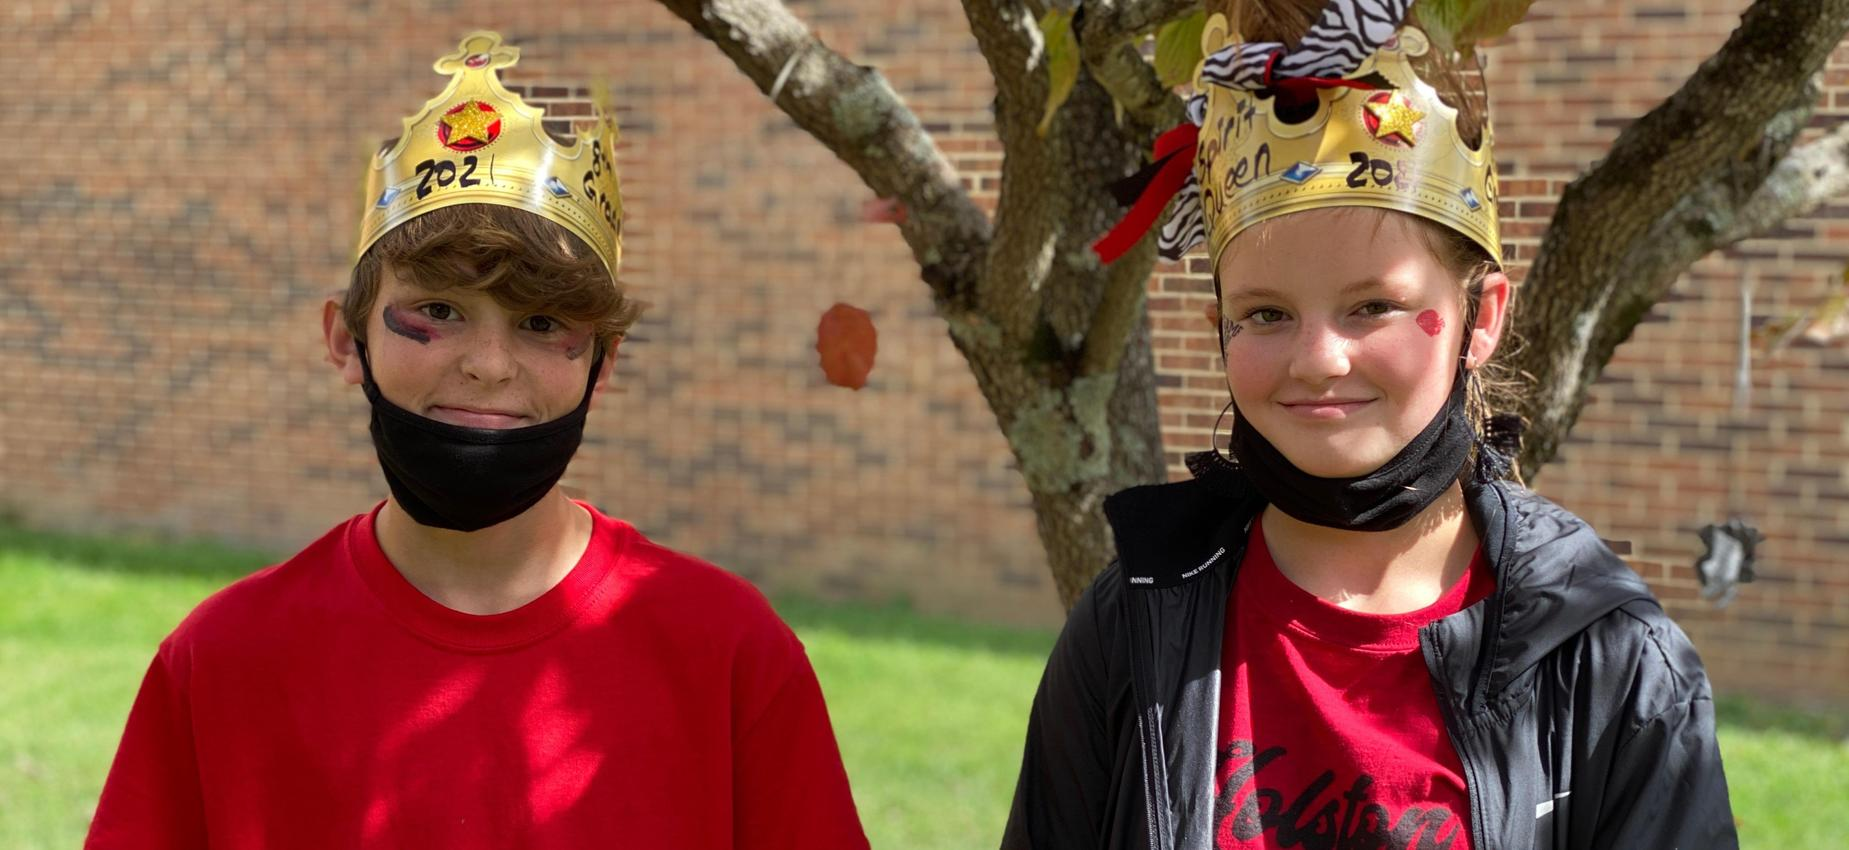 Two students wearing crowns stand outside a school.